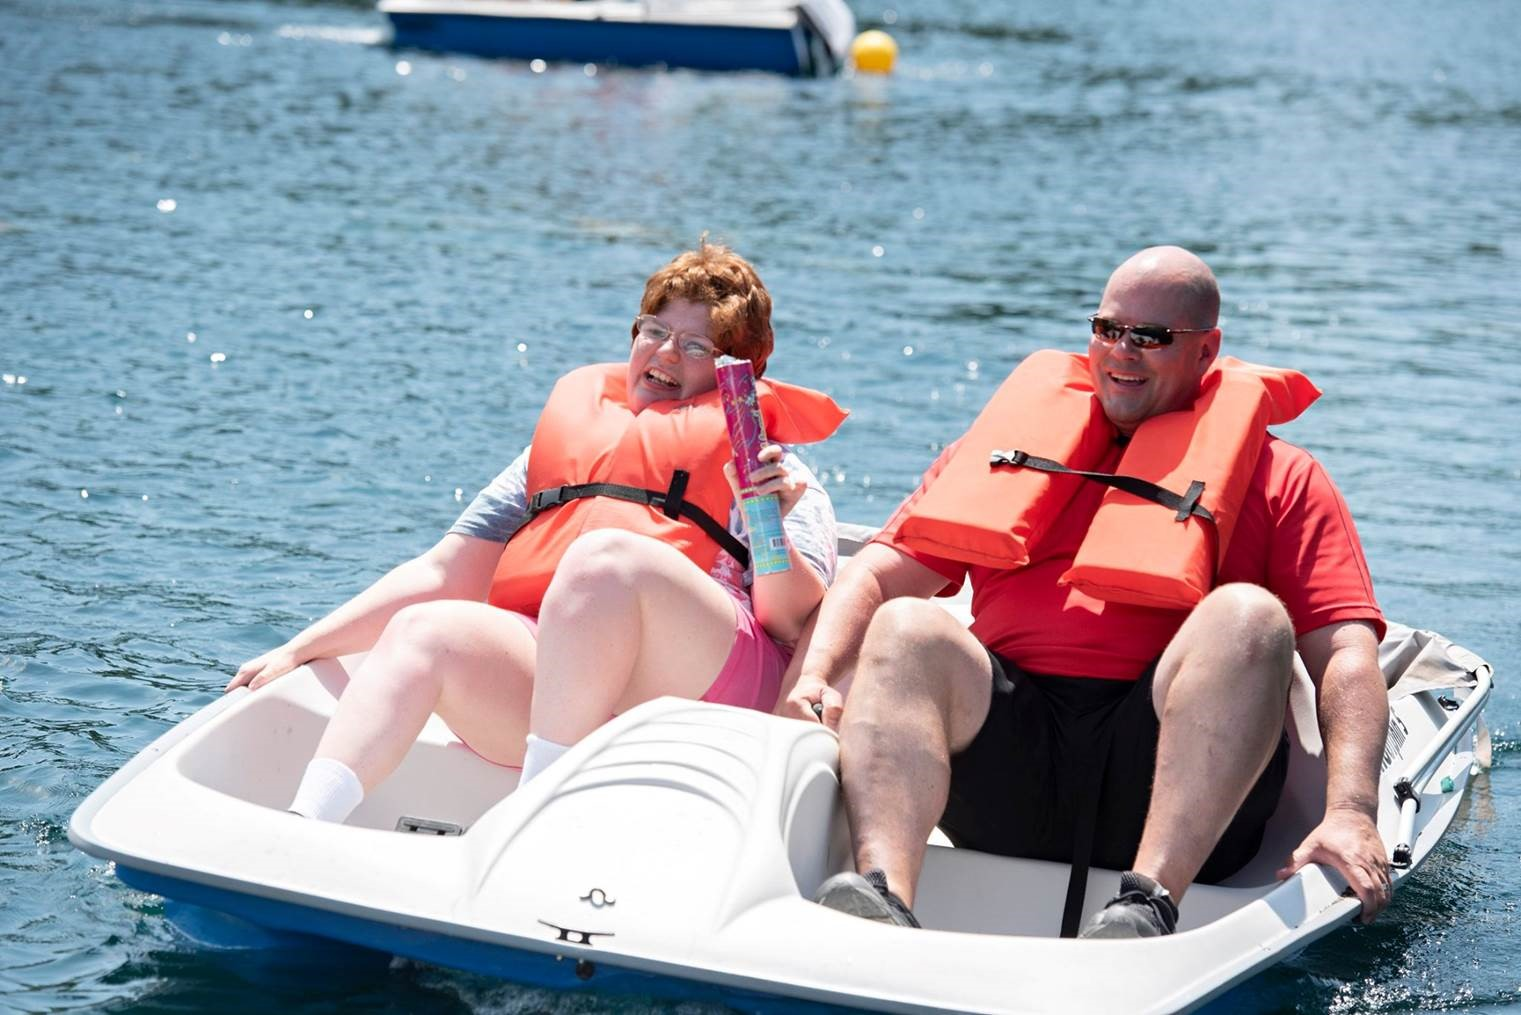 Image of a man and woman on a paddle boat.